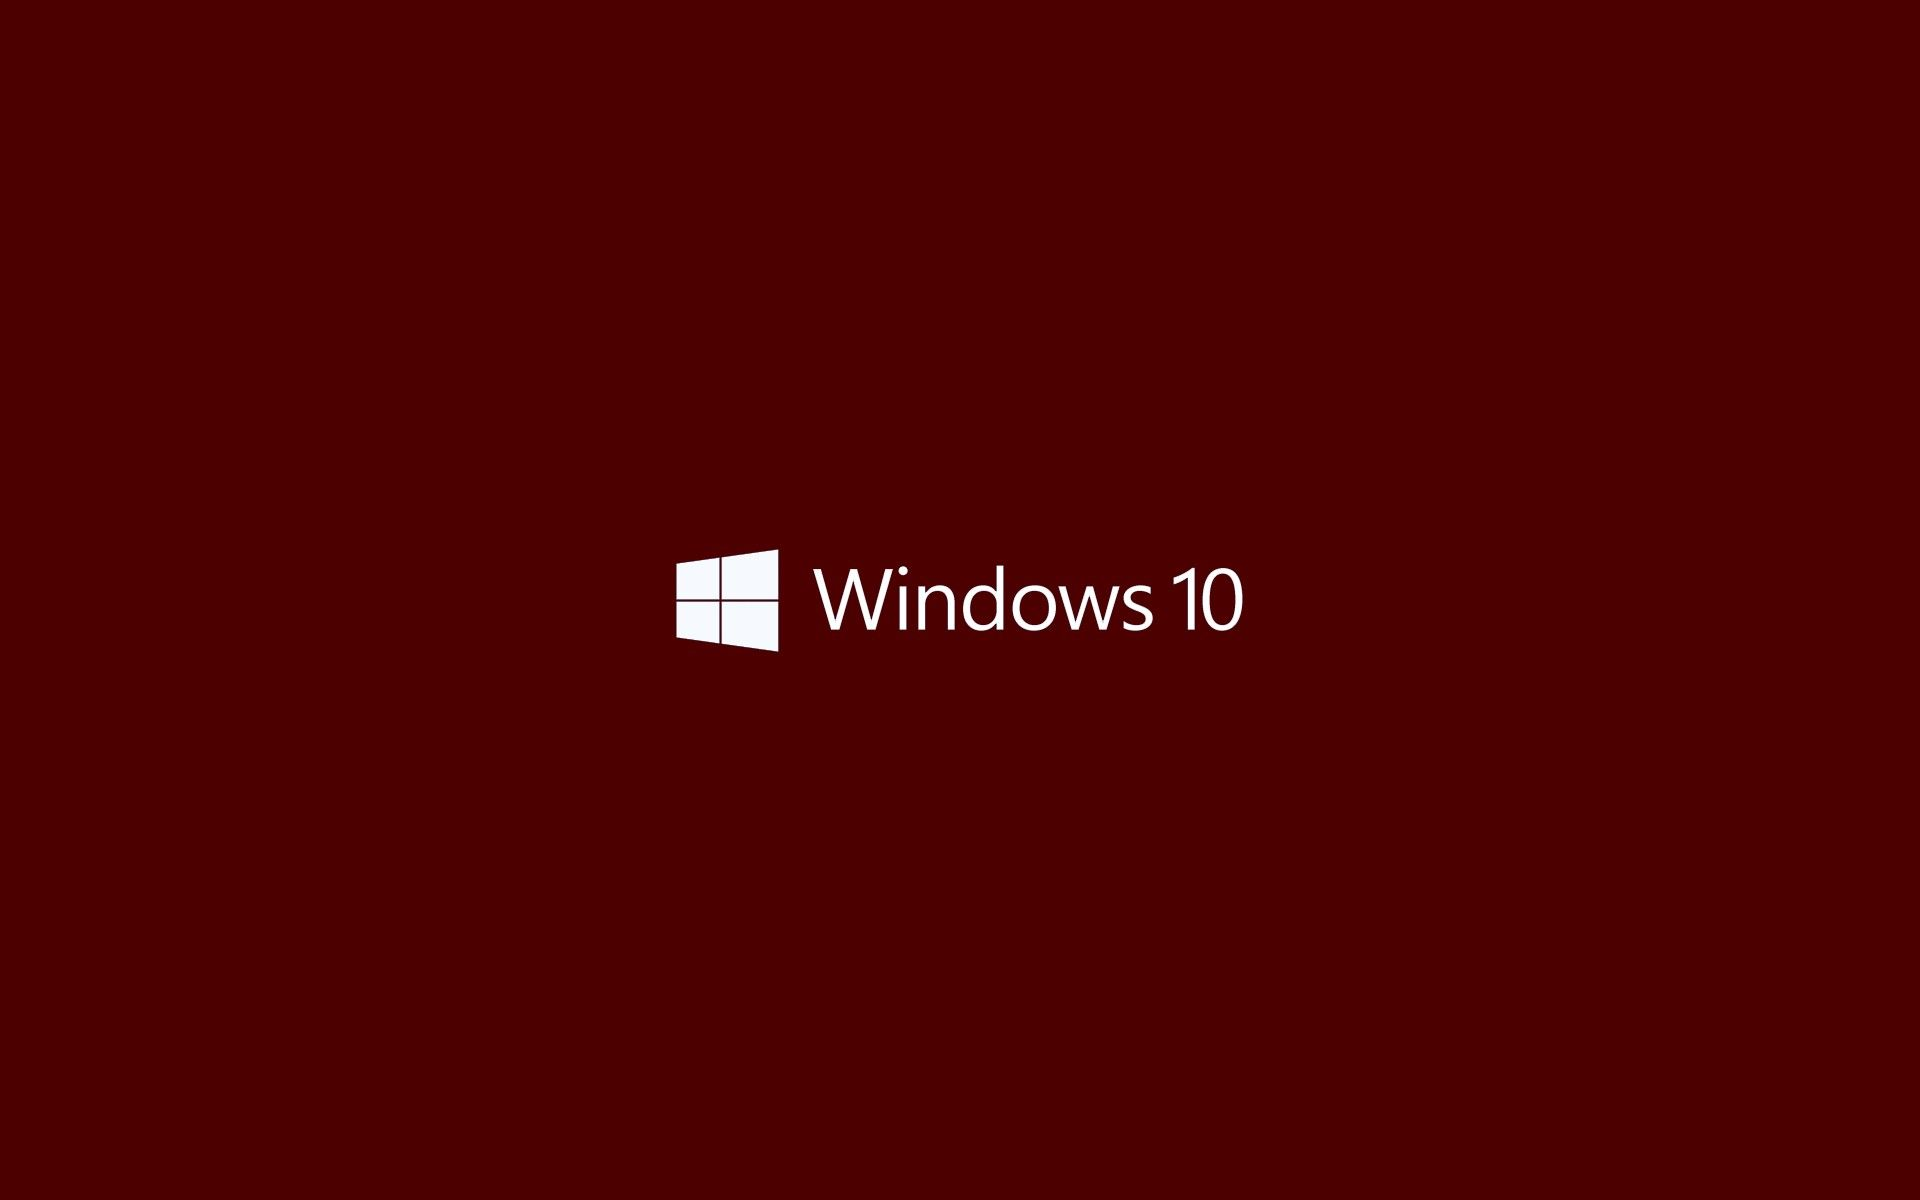 Luxury Red Windows 10 Wallpaper Check More At Https Zdwebhosting Com Red Windows 10 Wallpaper